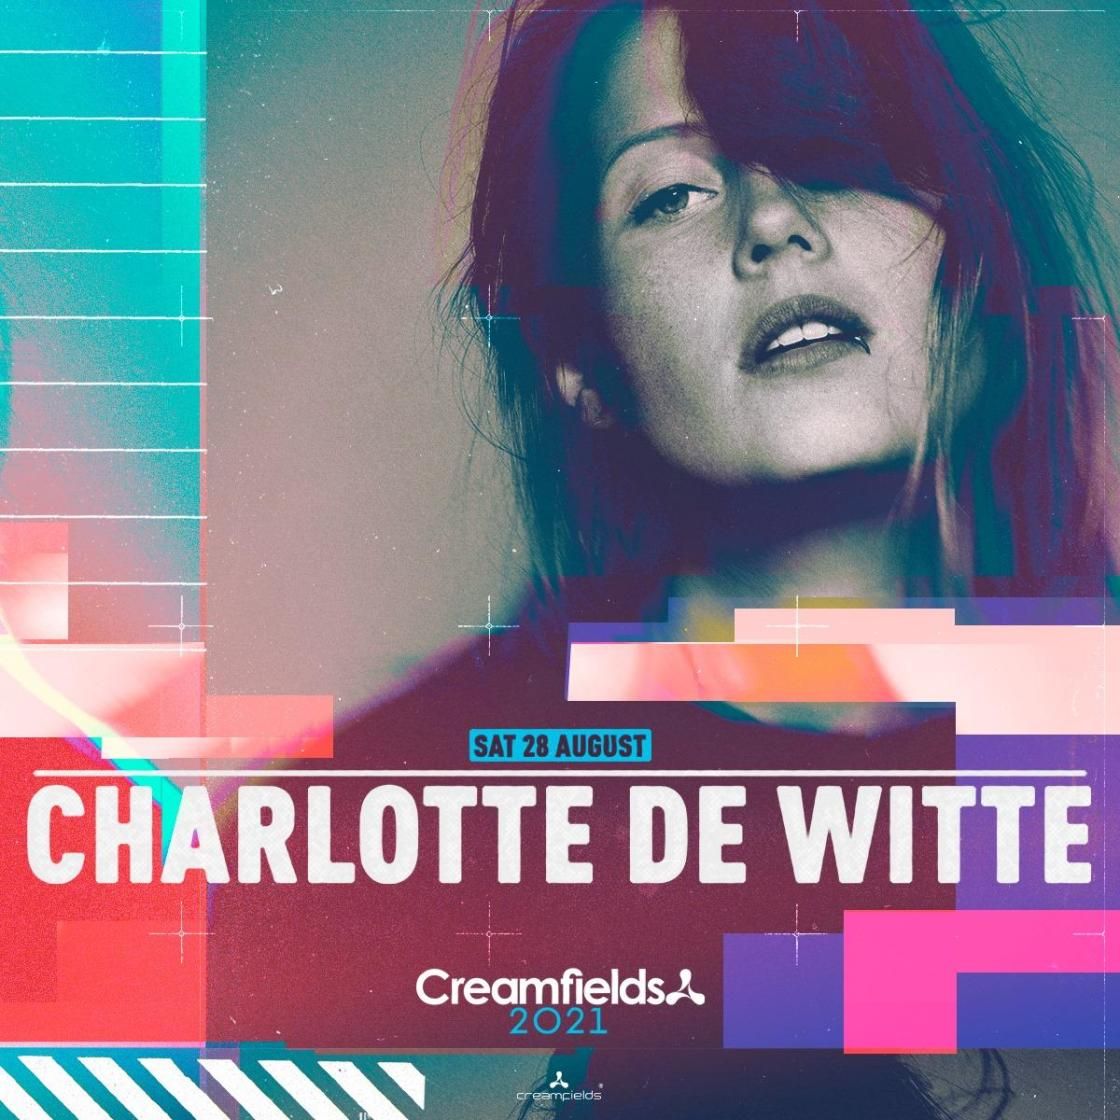 We're excited to announce Charlotte de Witte will be joining us in 2021 for her ...